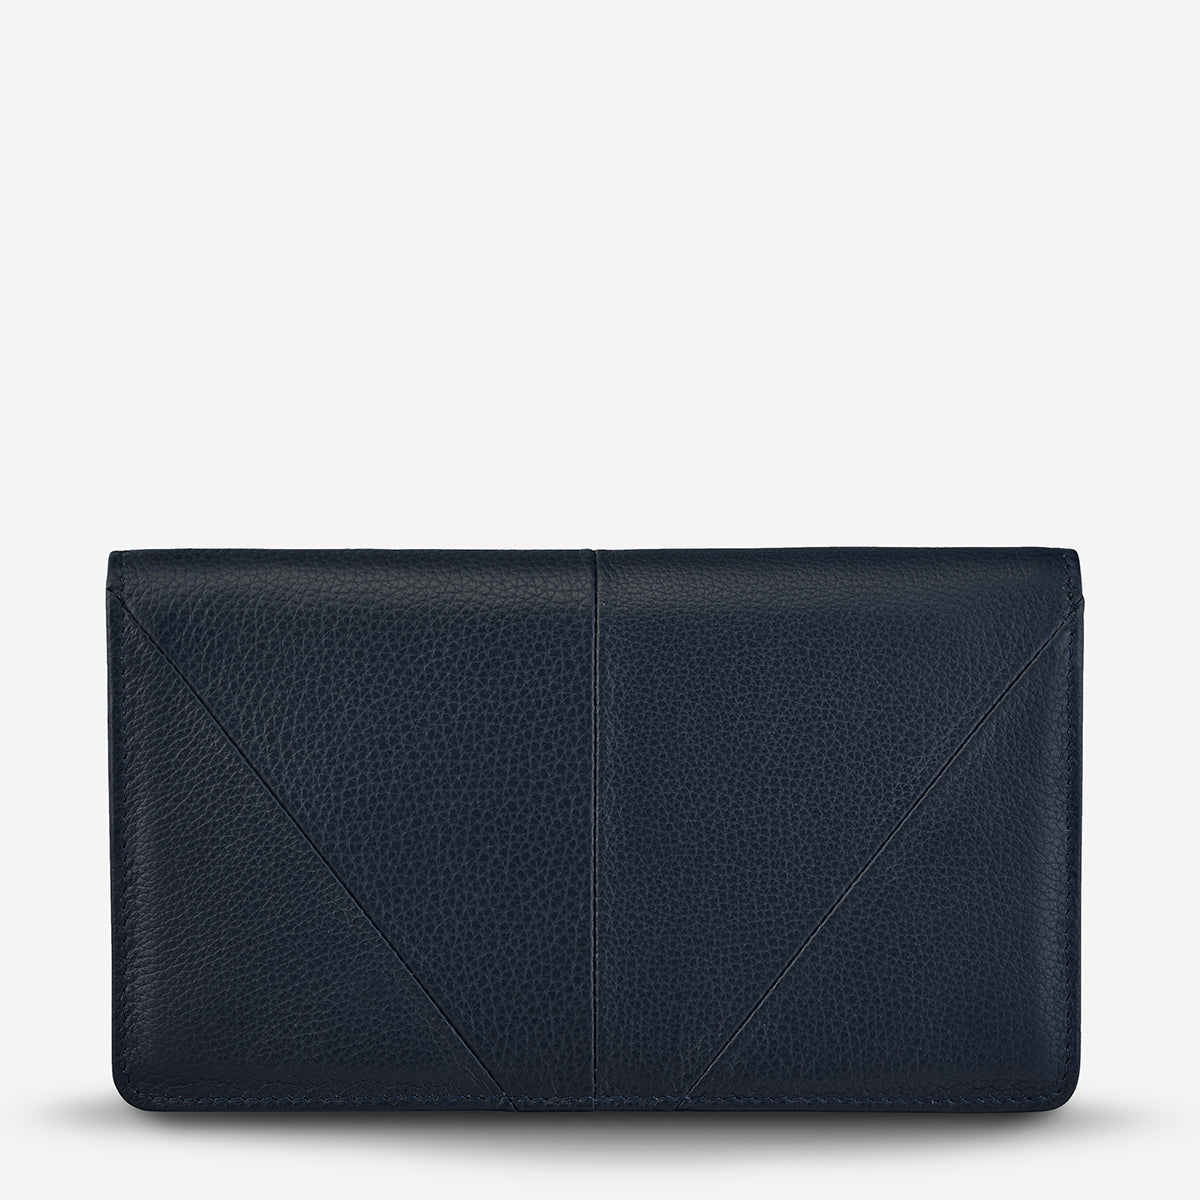 Status Anxiety Triple Threat Women's Leather Wallet - Navy and Rose Gold